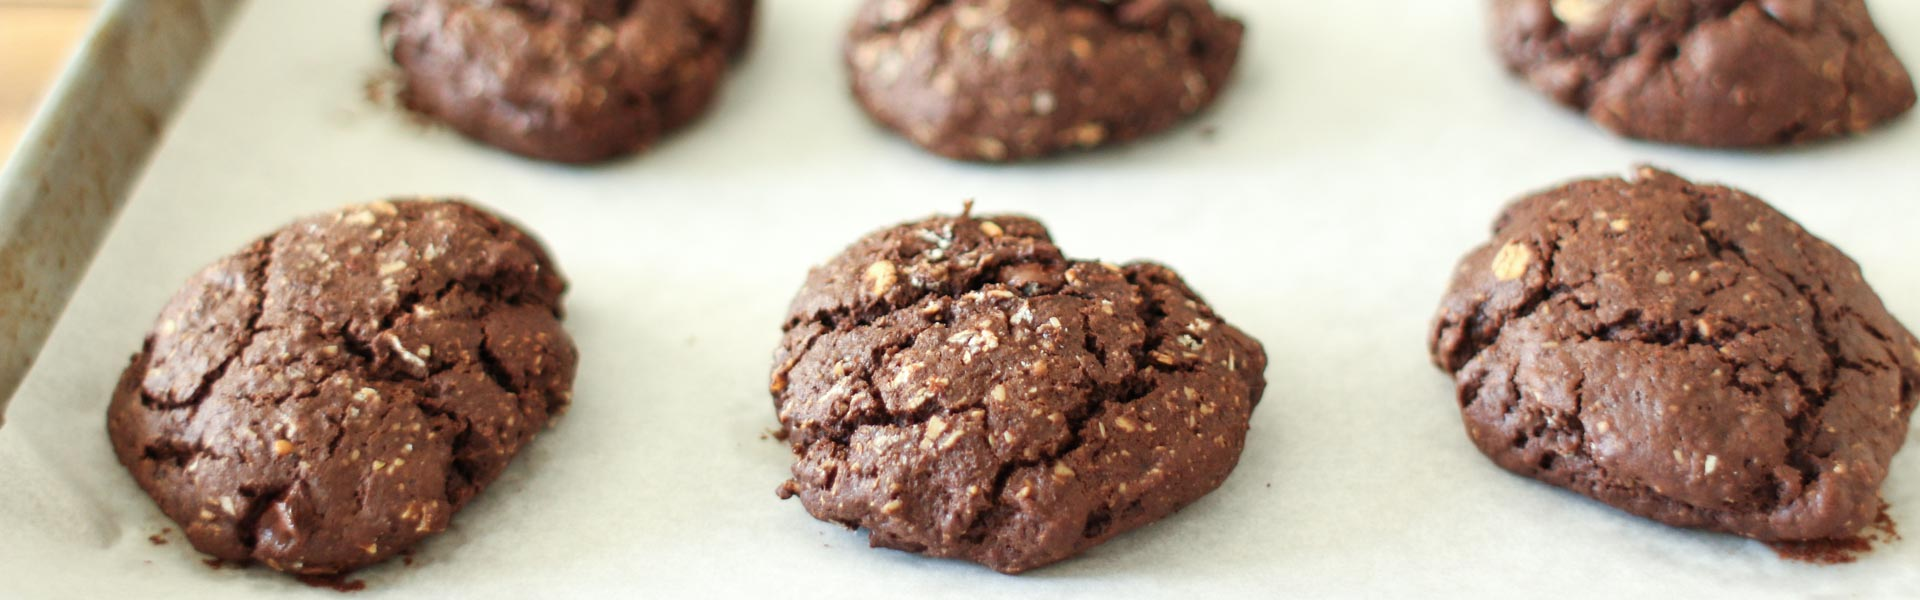 <p>Some mornings need a little more indulgence. These provide rich chocolate and coffee flavor while also packing in protein and fiber. Prune Juice Concentrateand Dried Plum Puree together gives the cookie dough richness while keeping sugar and butter levels at a minimum.</p>